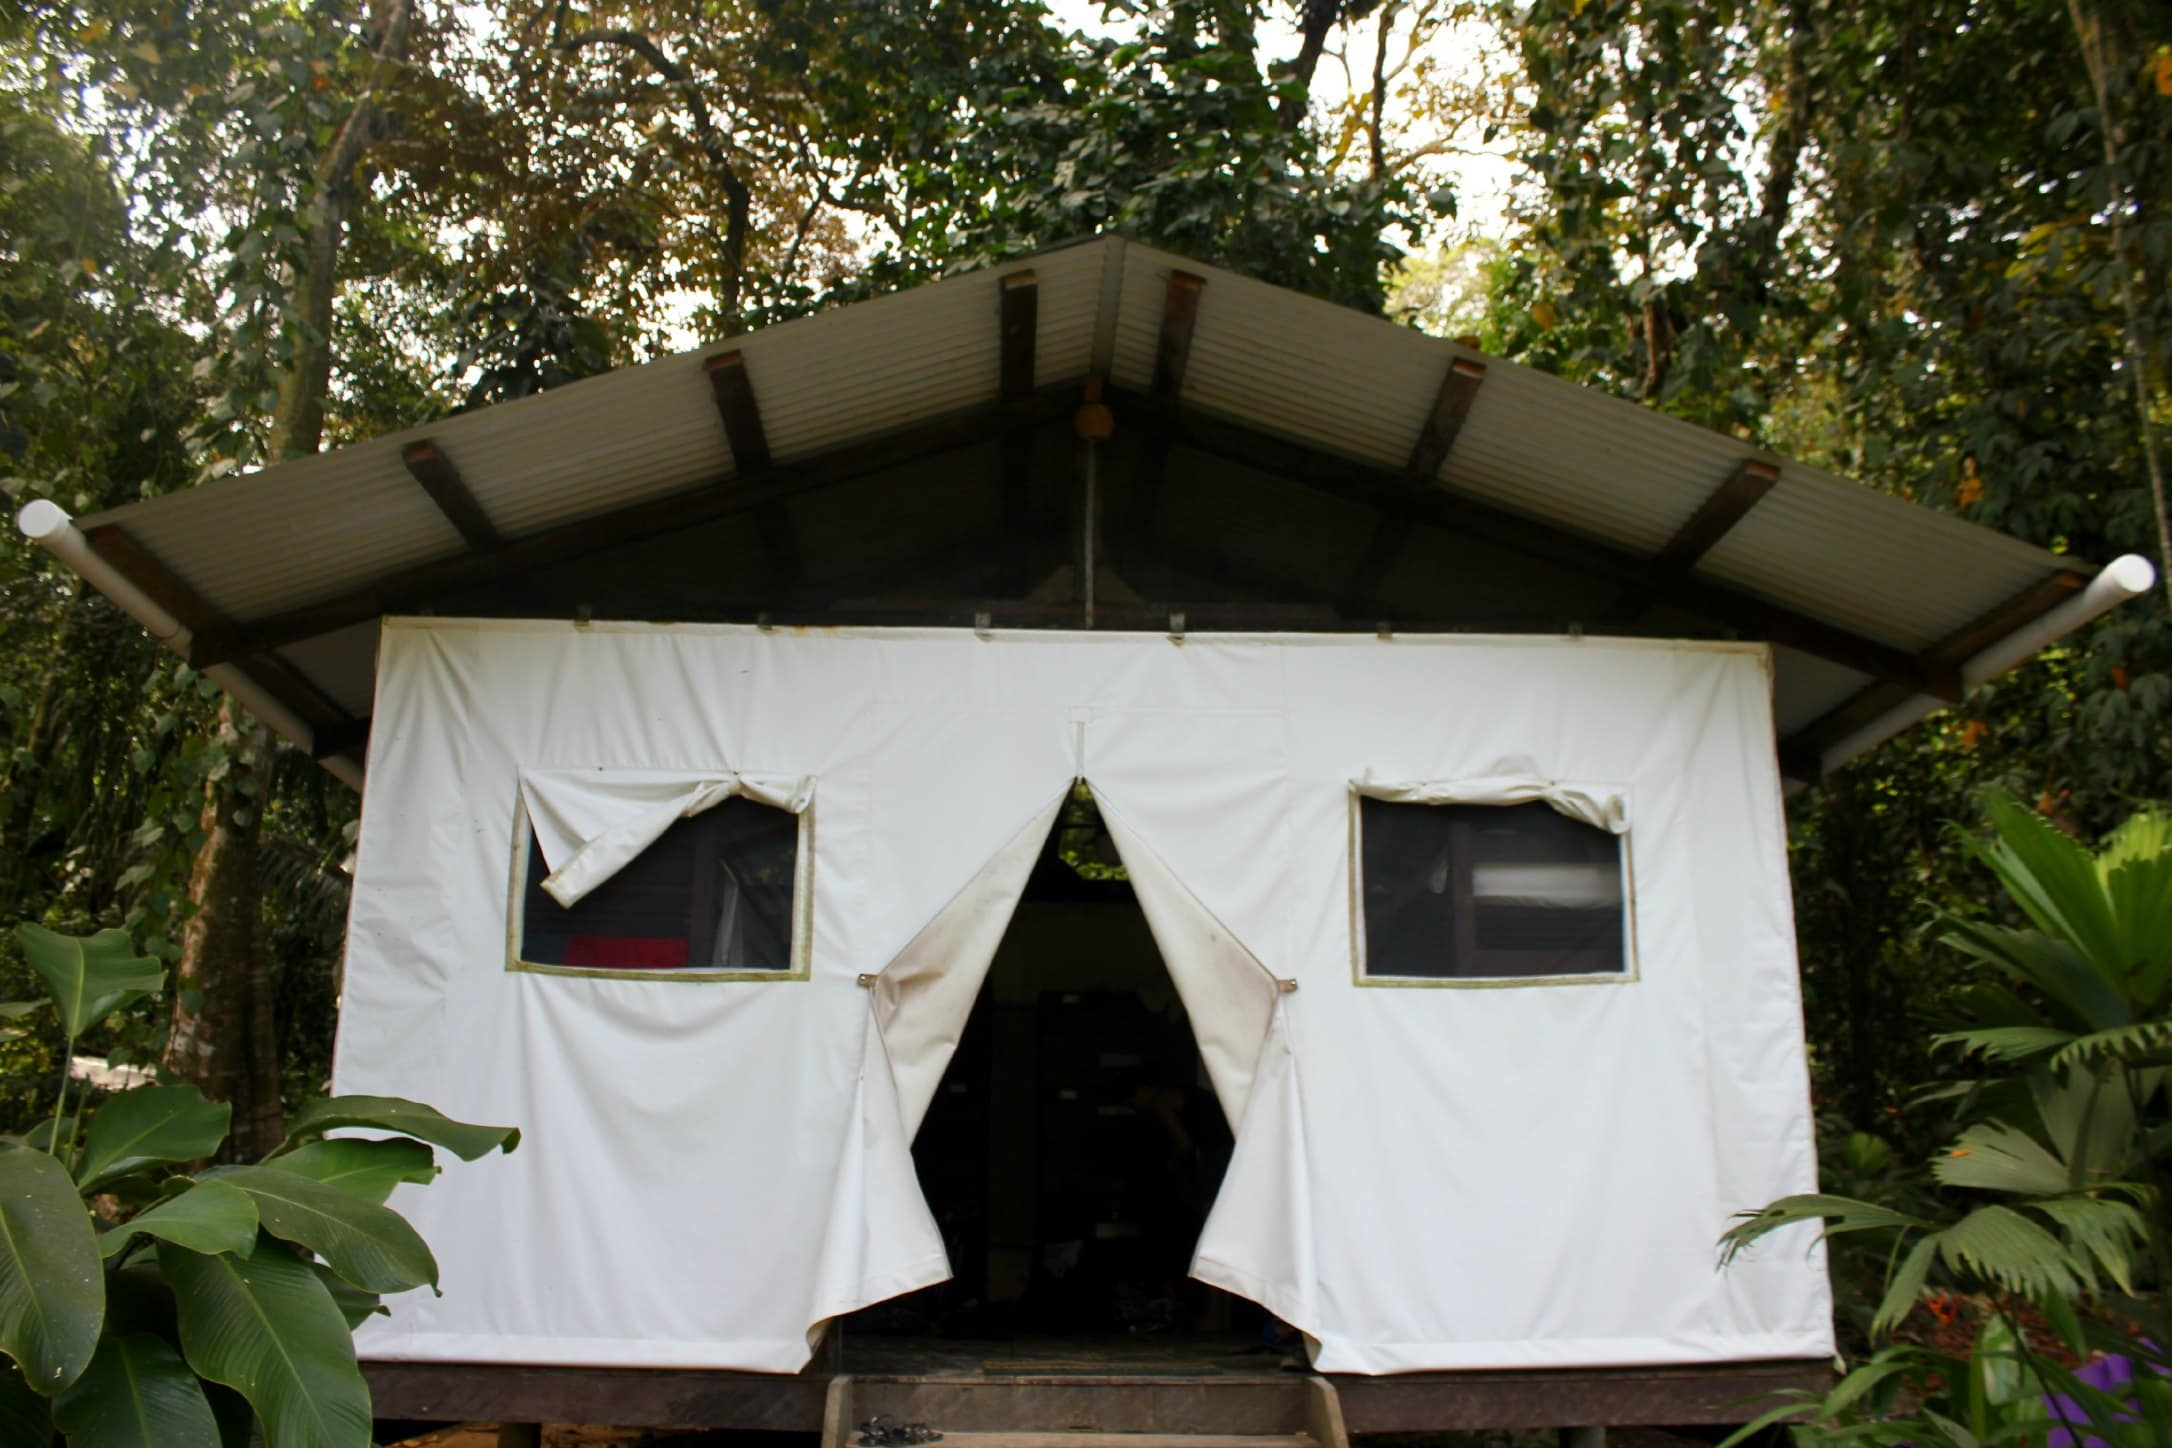 At first we thought that the dorm tents would potentially be noisy but we lucked out and had an awesome respectful group of people in our dorm. & Glamping at Palmar Tent Lodge - The Five Foot Traveler